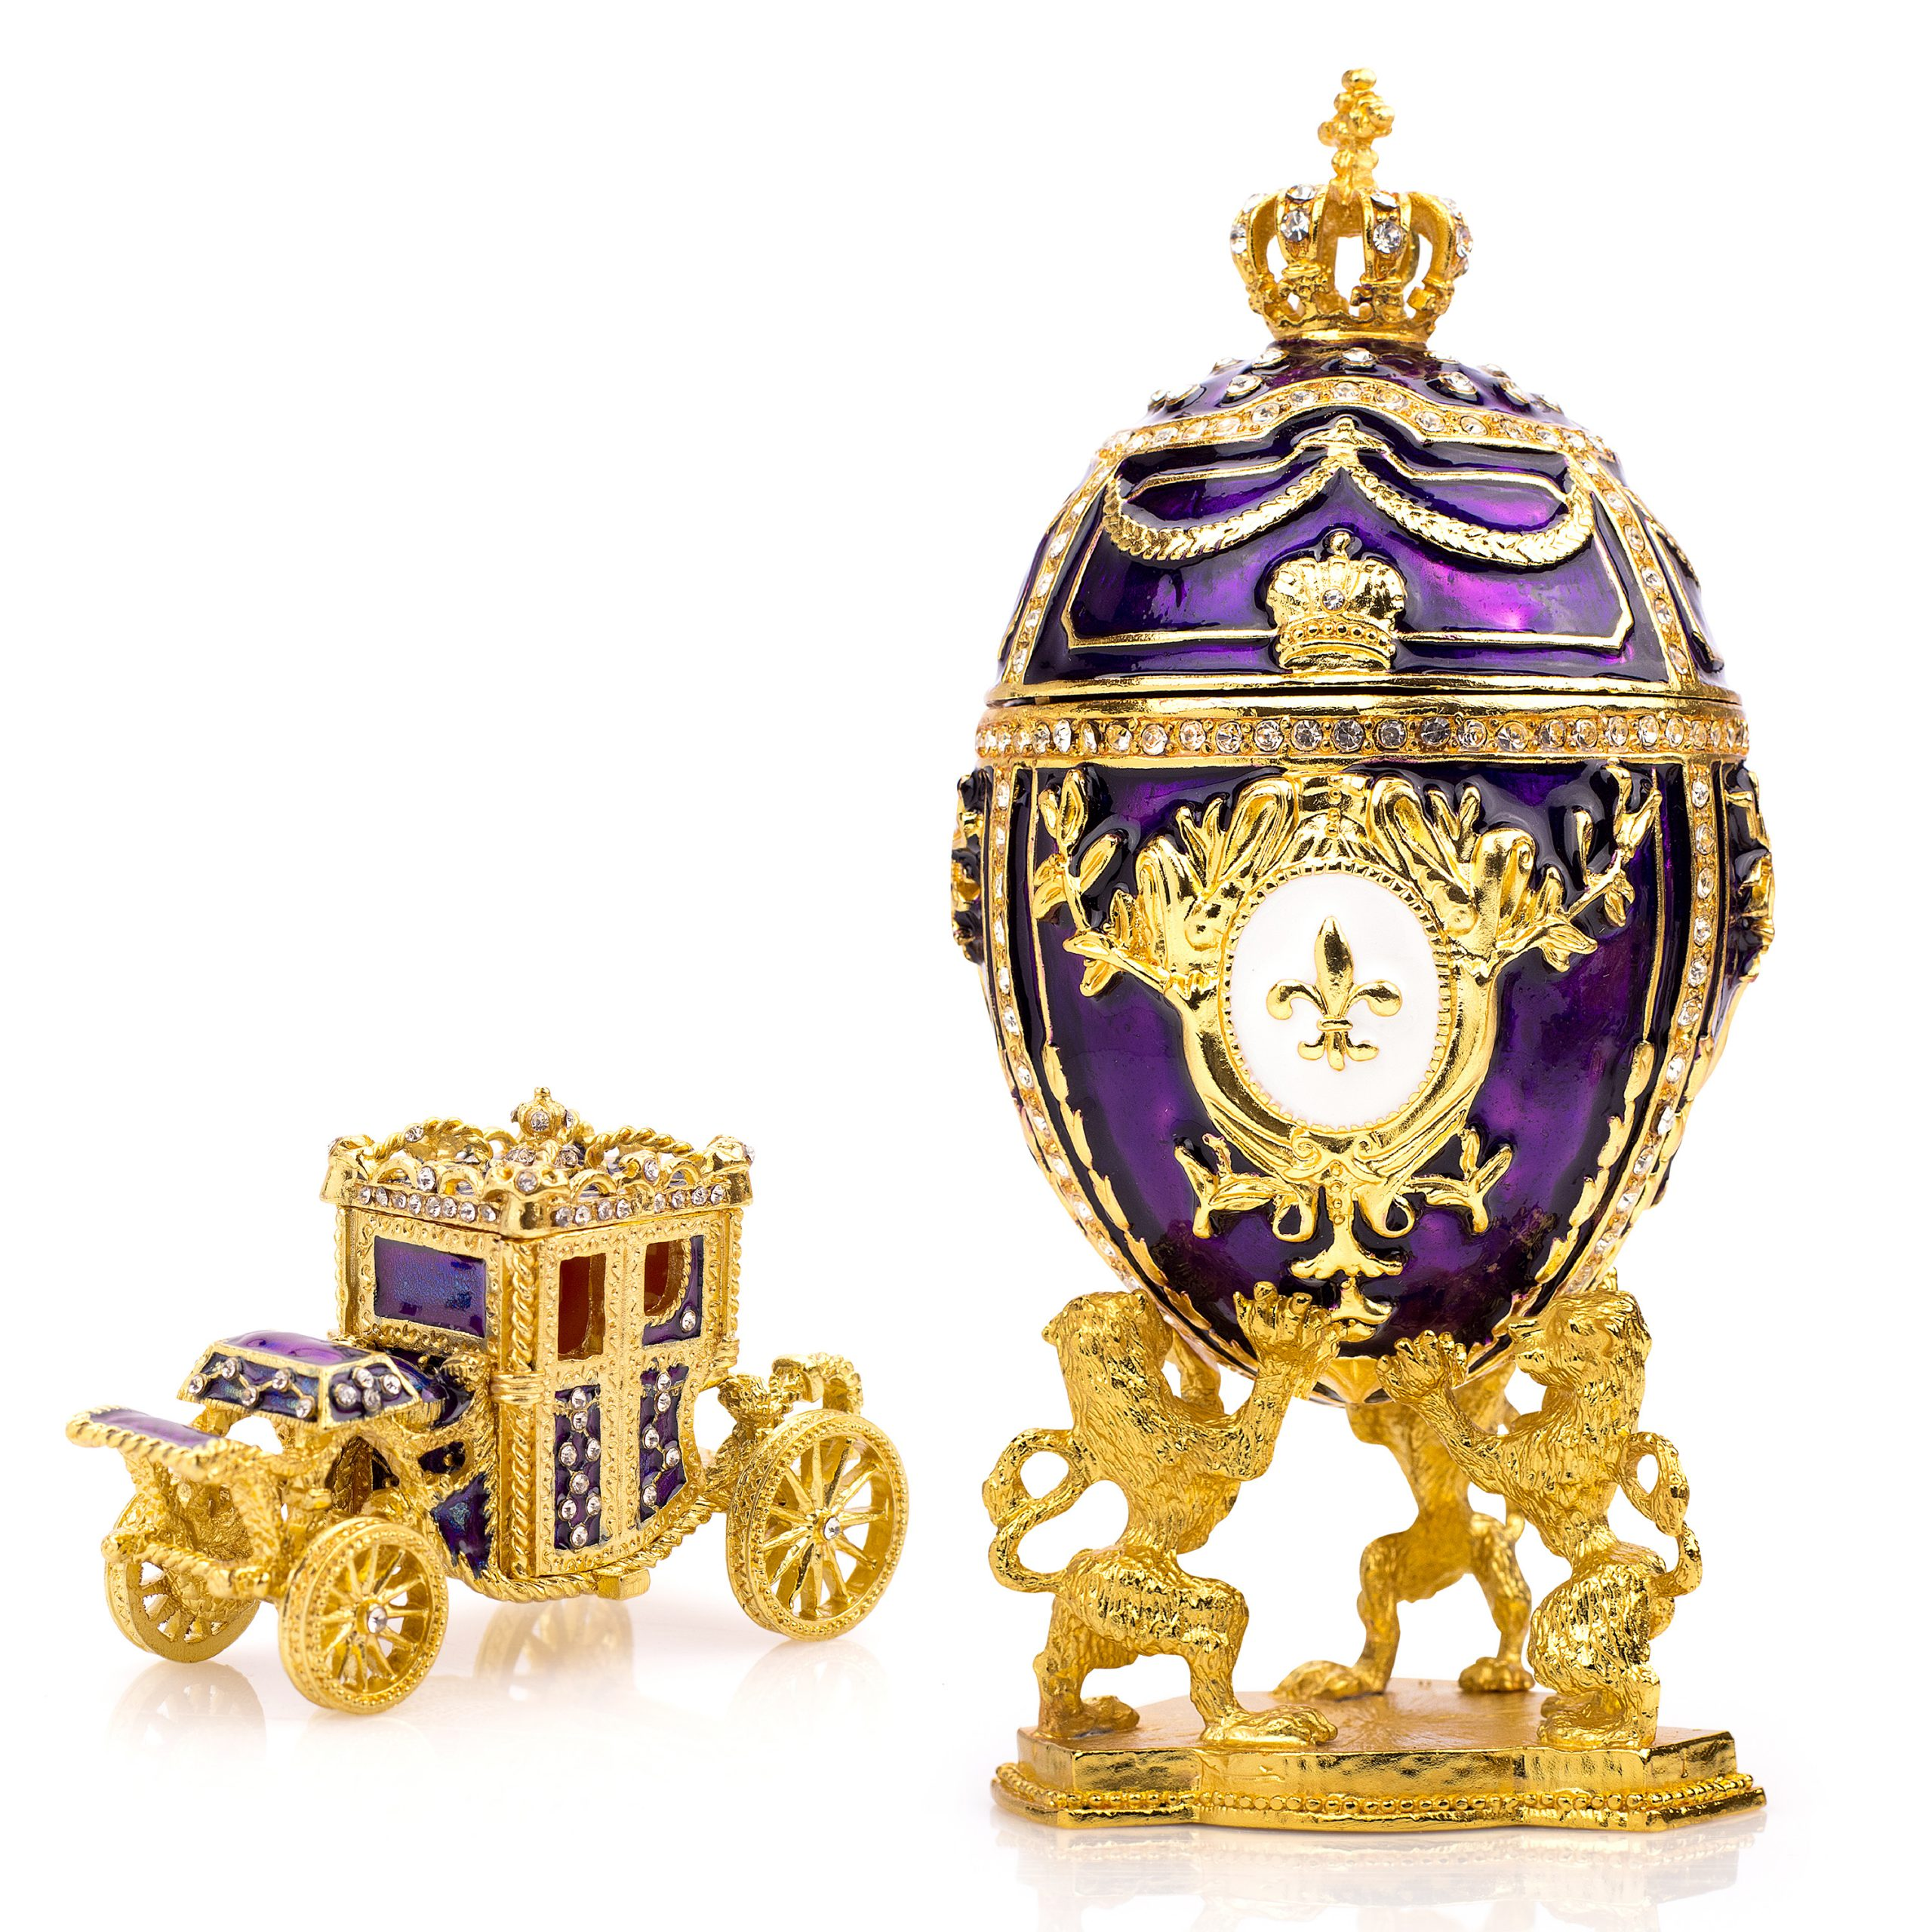 Top 10 Faberge Egg Replicas that You Can Find on Amazon